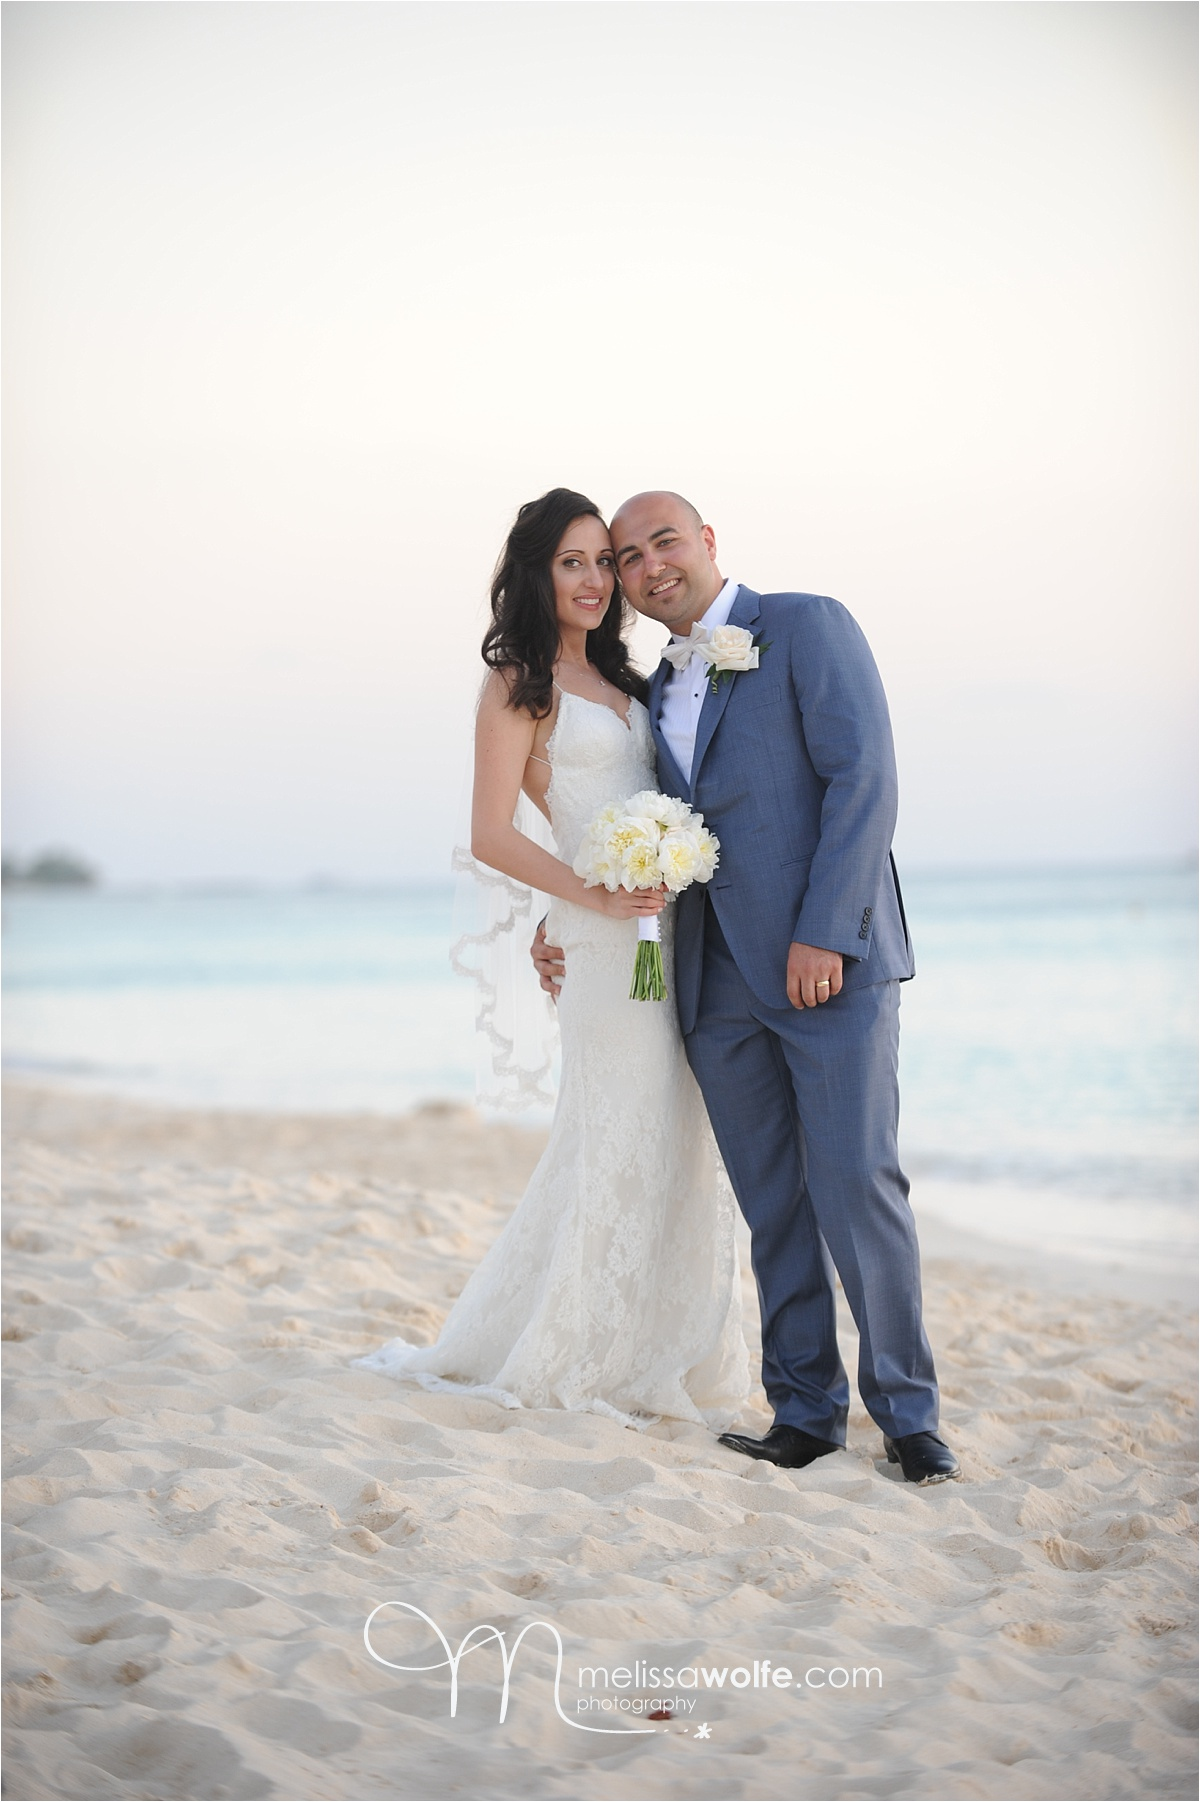 Cayman Ritz Wedding